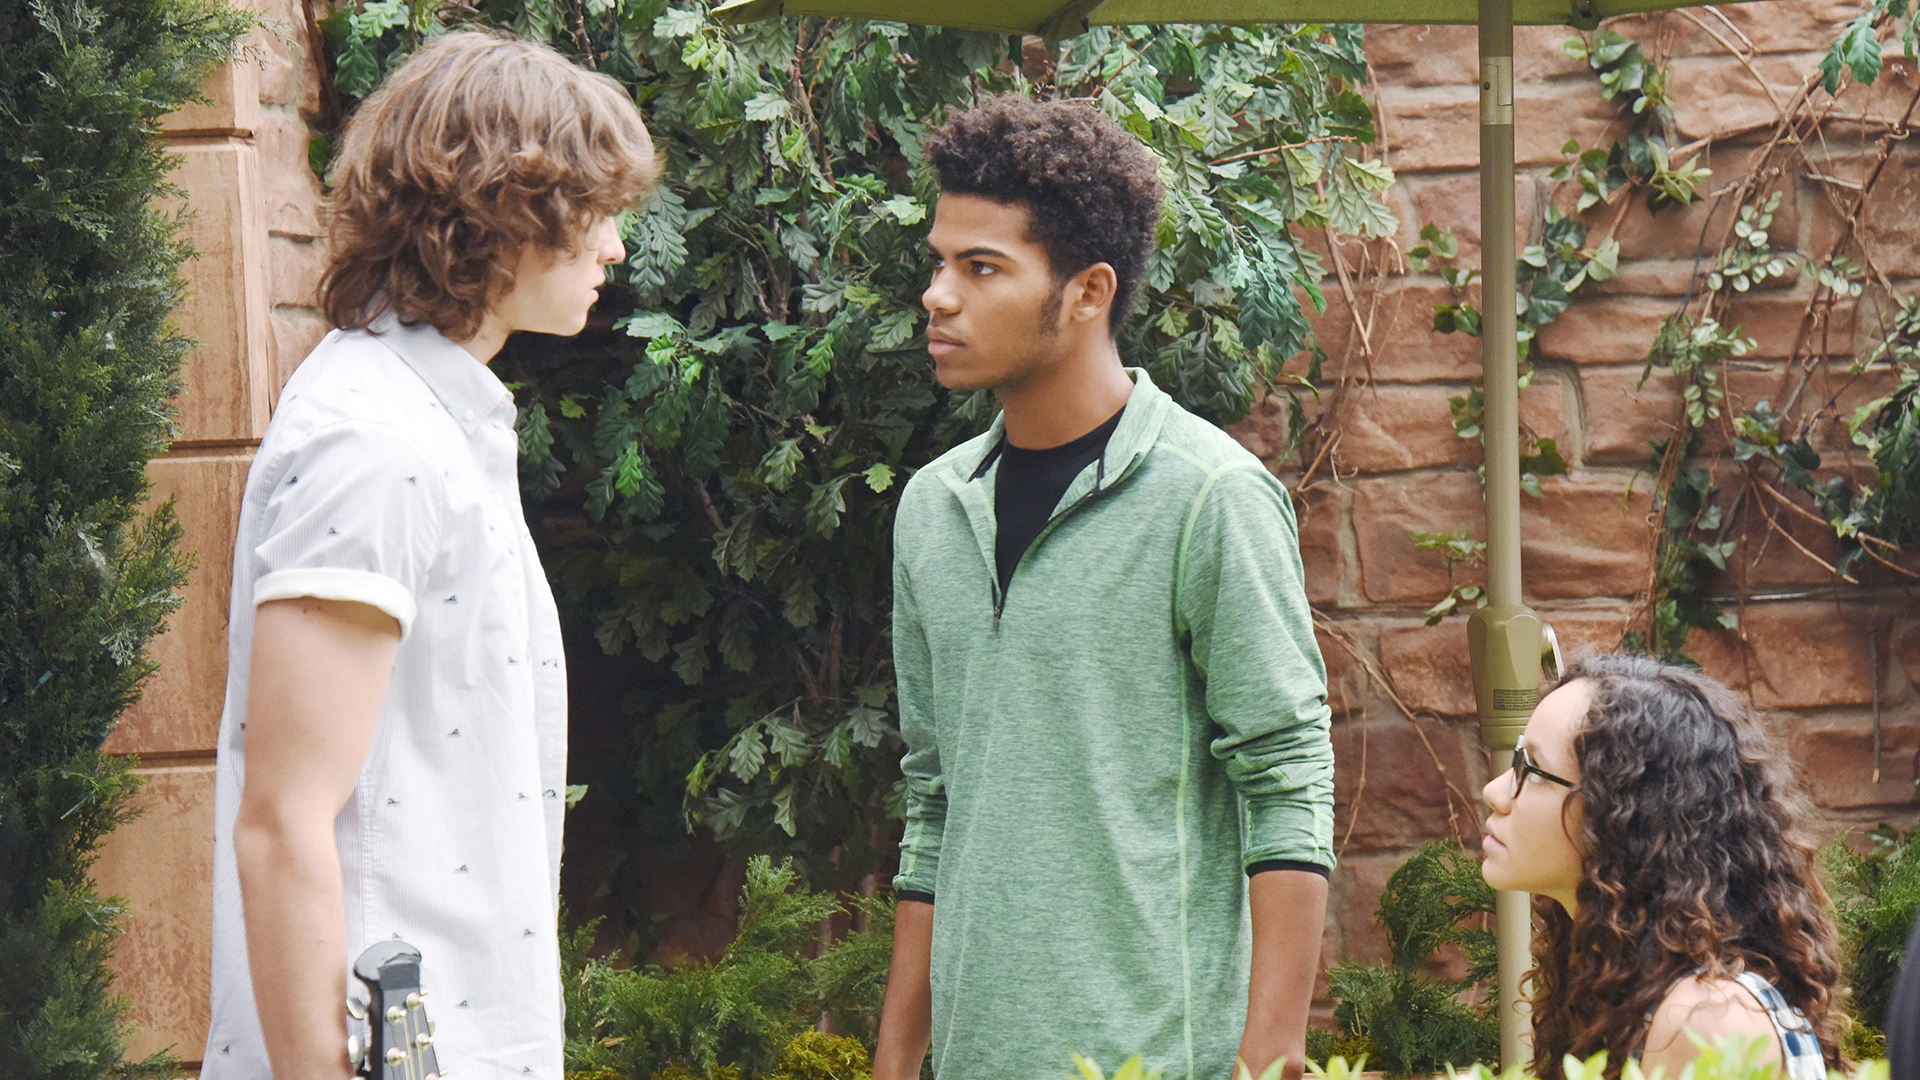 Reed clashes with Charlie.